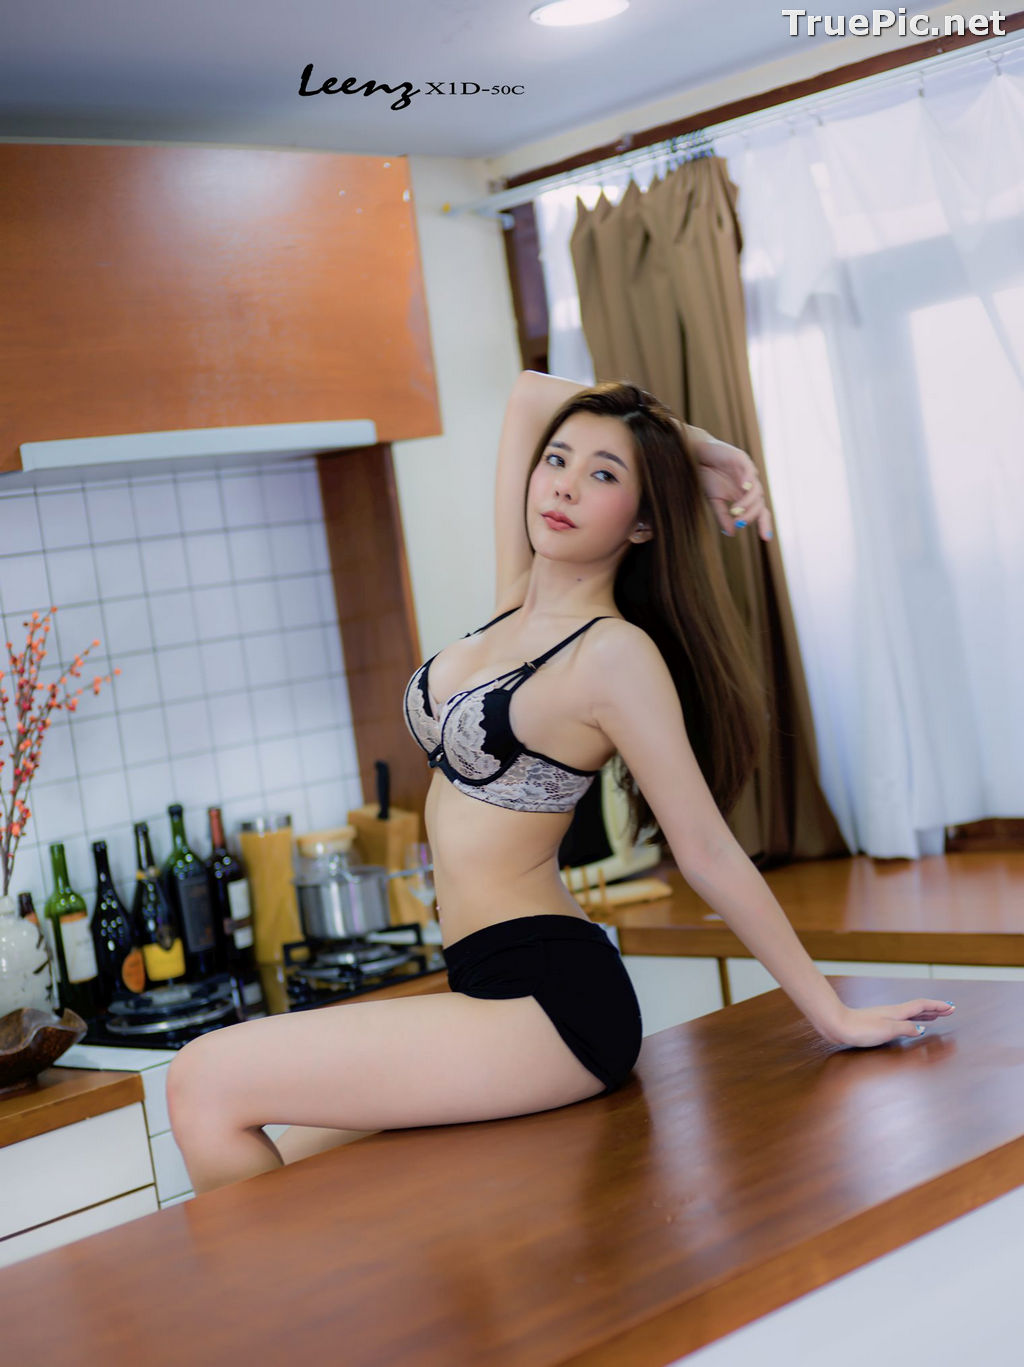 Image Thailand Model - Supitcha Boonkumphoung - Home Alone? Lingerie - TruePic.net - Picture-14